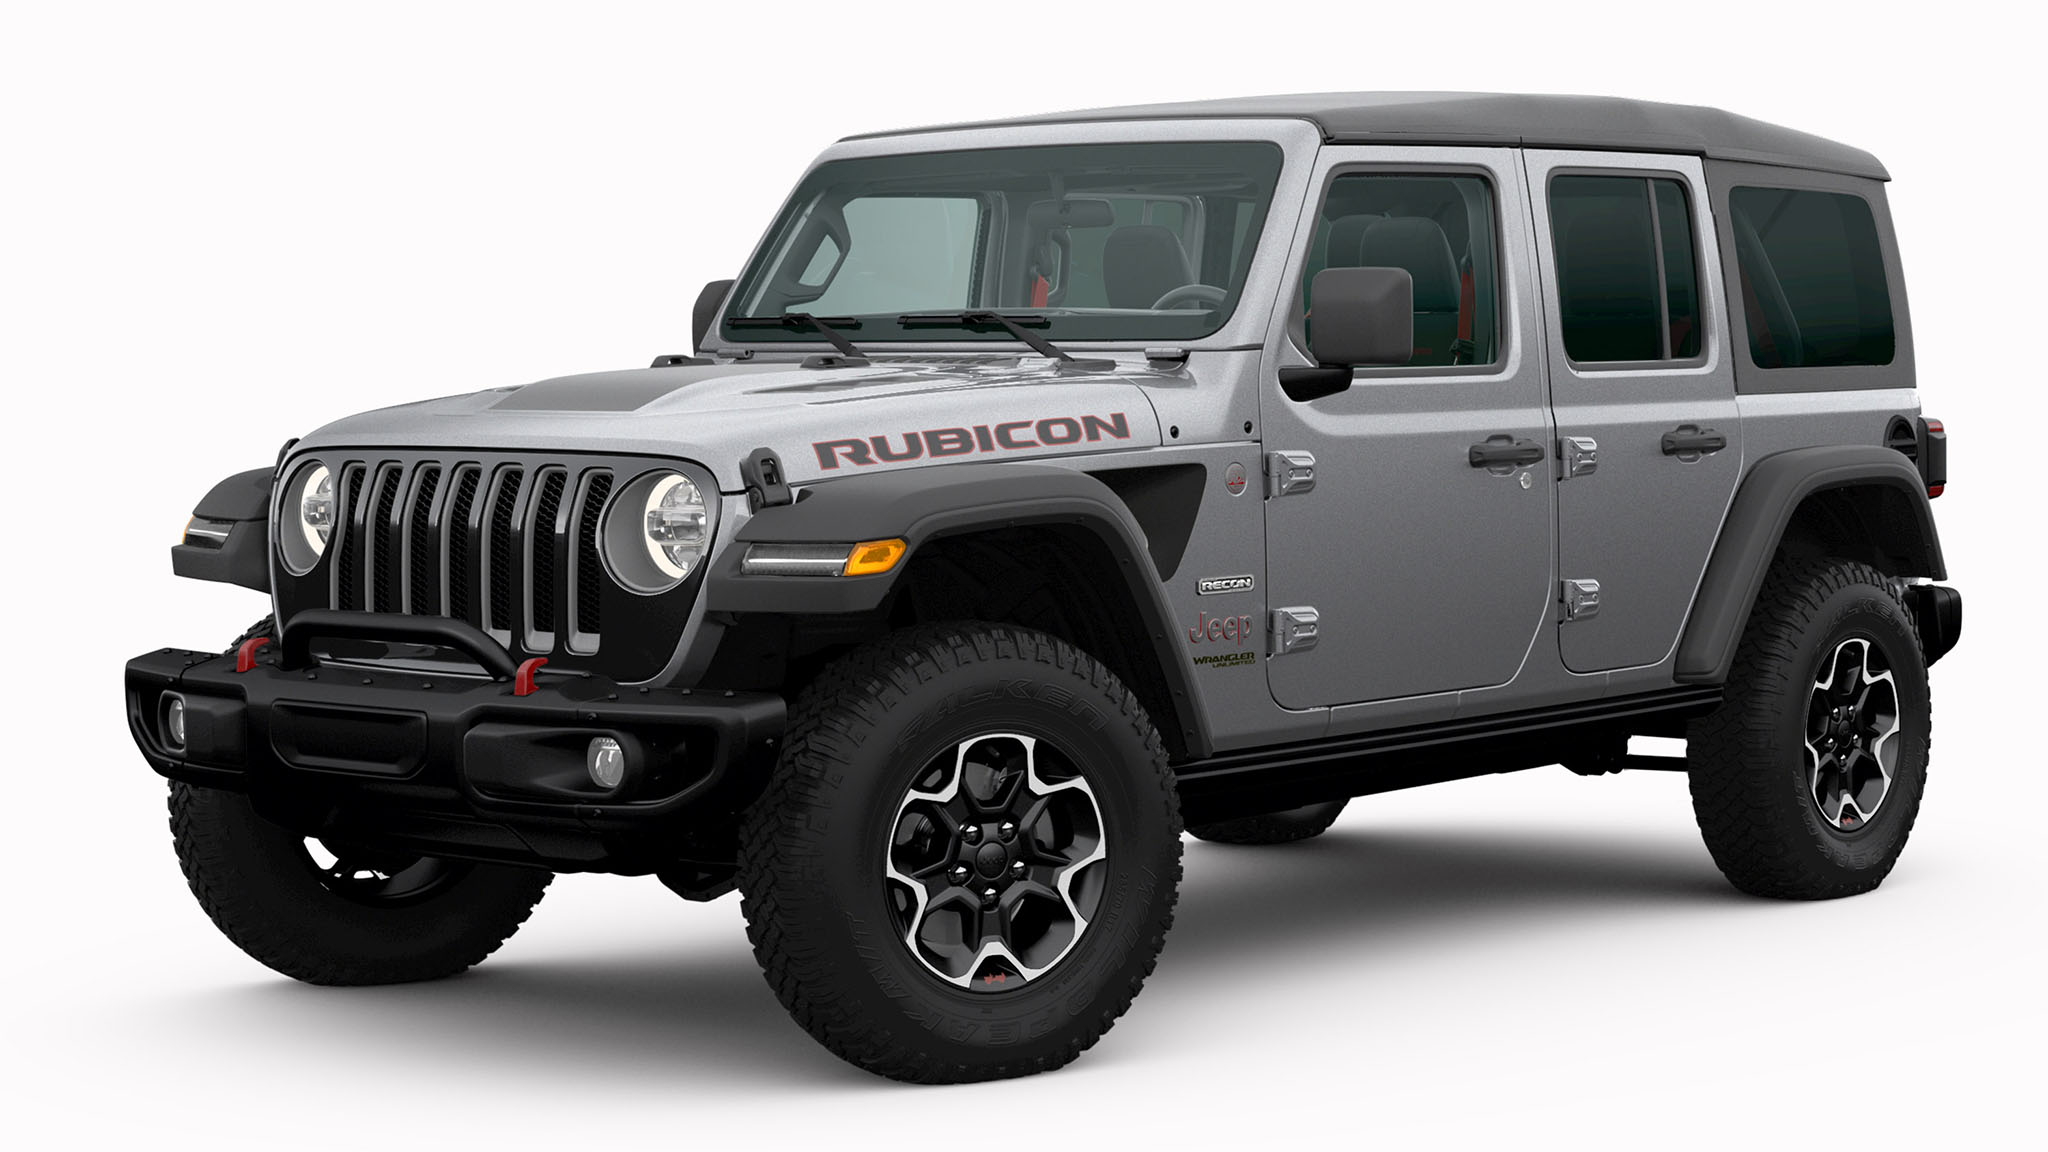 Best Year For Jeep Wrangler >> 2020 Jeep Wrangler Rubicon Recon Returns to the Lineup - Automobile